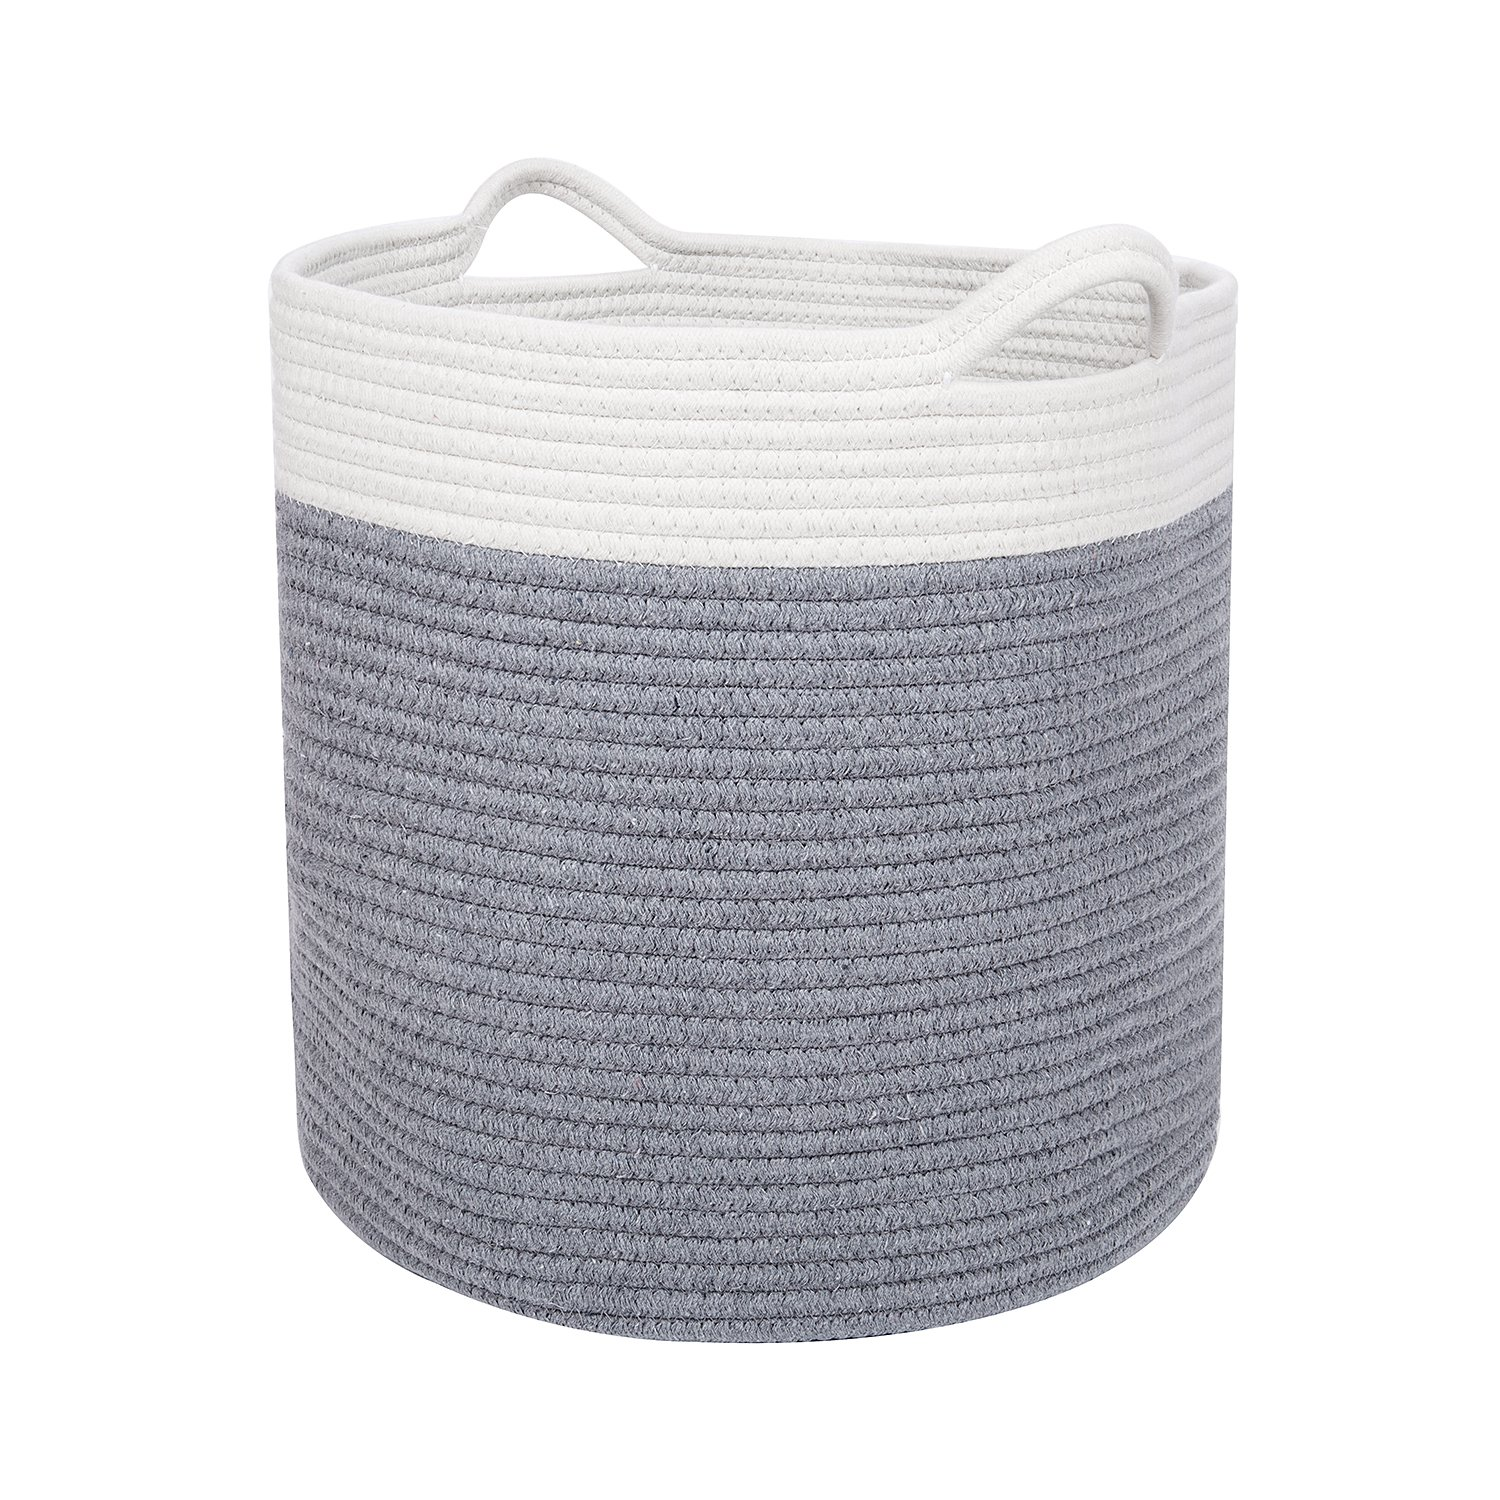 """Large 17"""" x 15"""" Cotton Storage Basket for Men, Women, Kids & Baby 